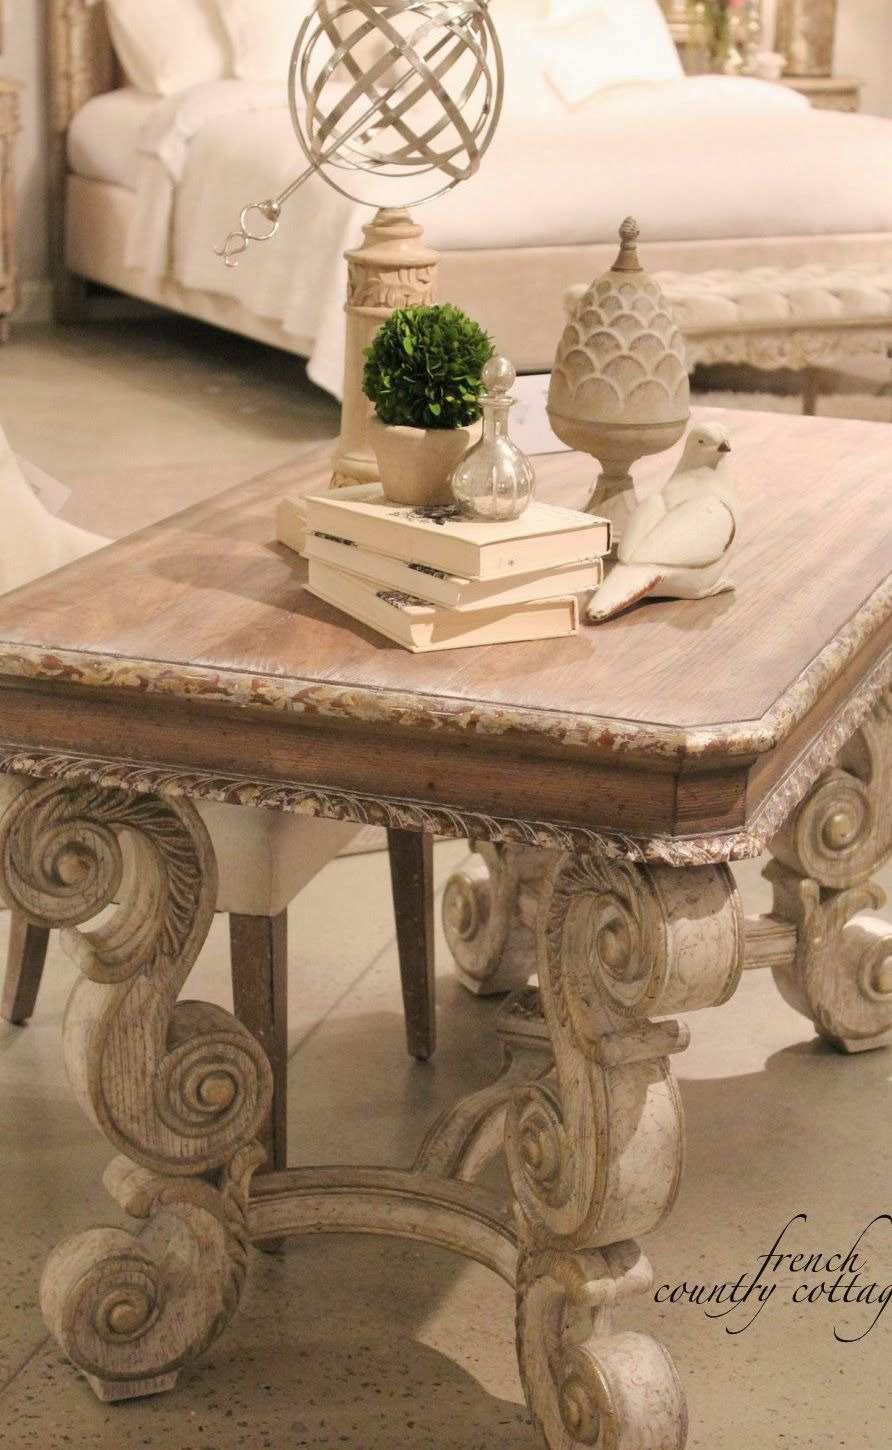 Antique Country French Furniture Luxury High Point Market Accentrics Home